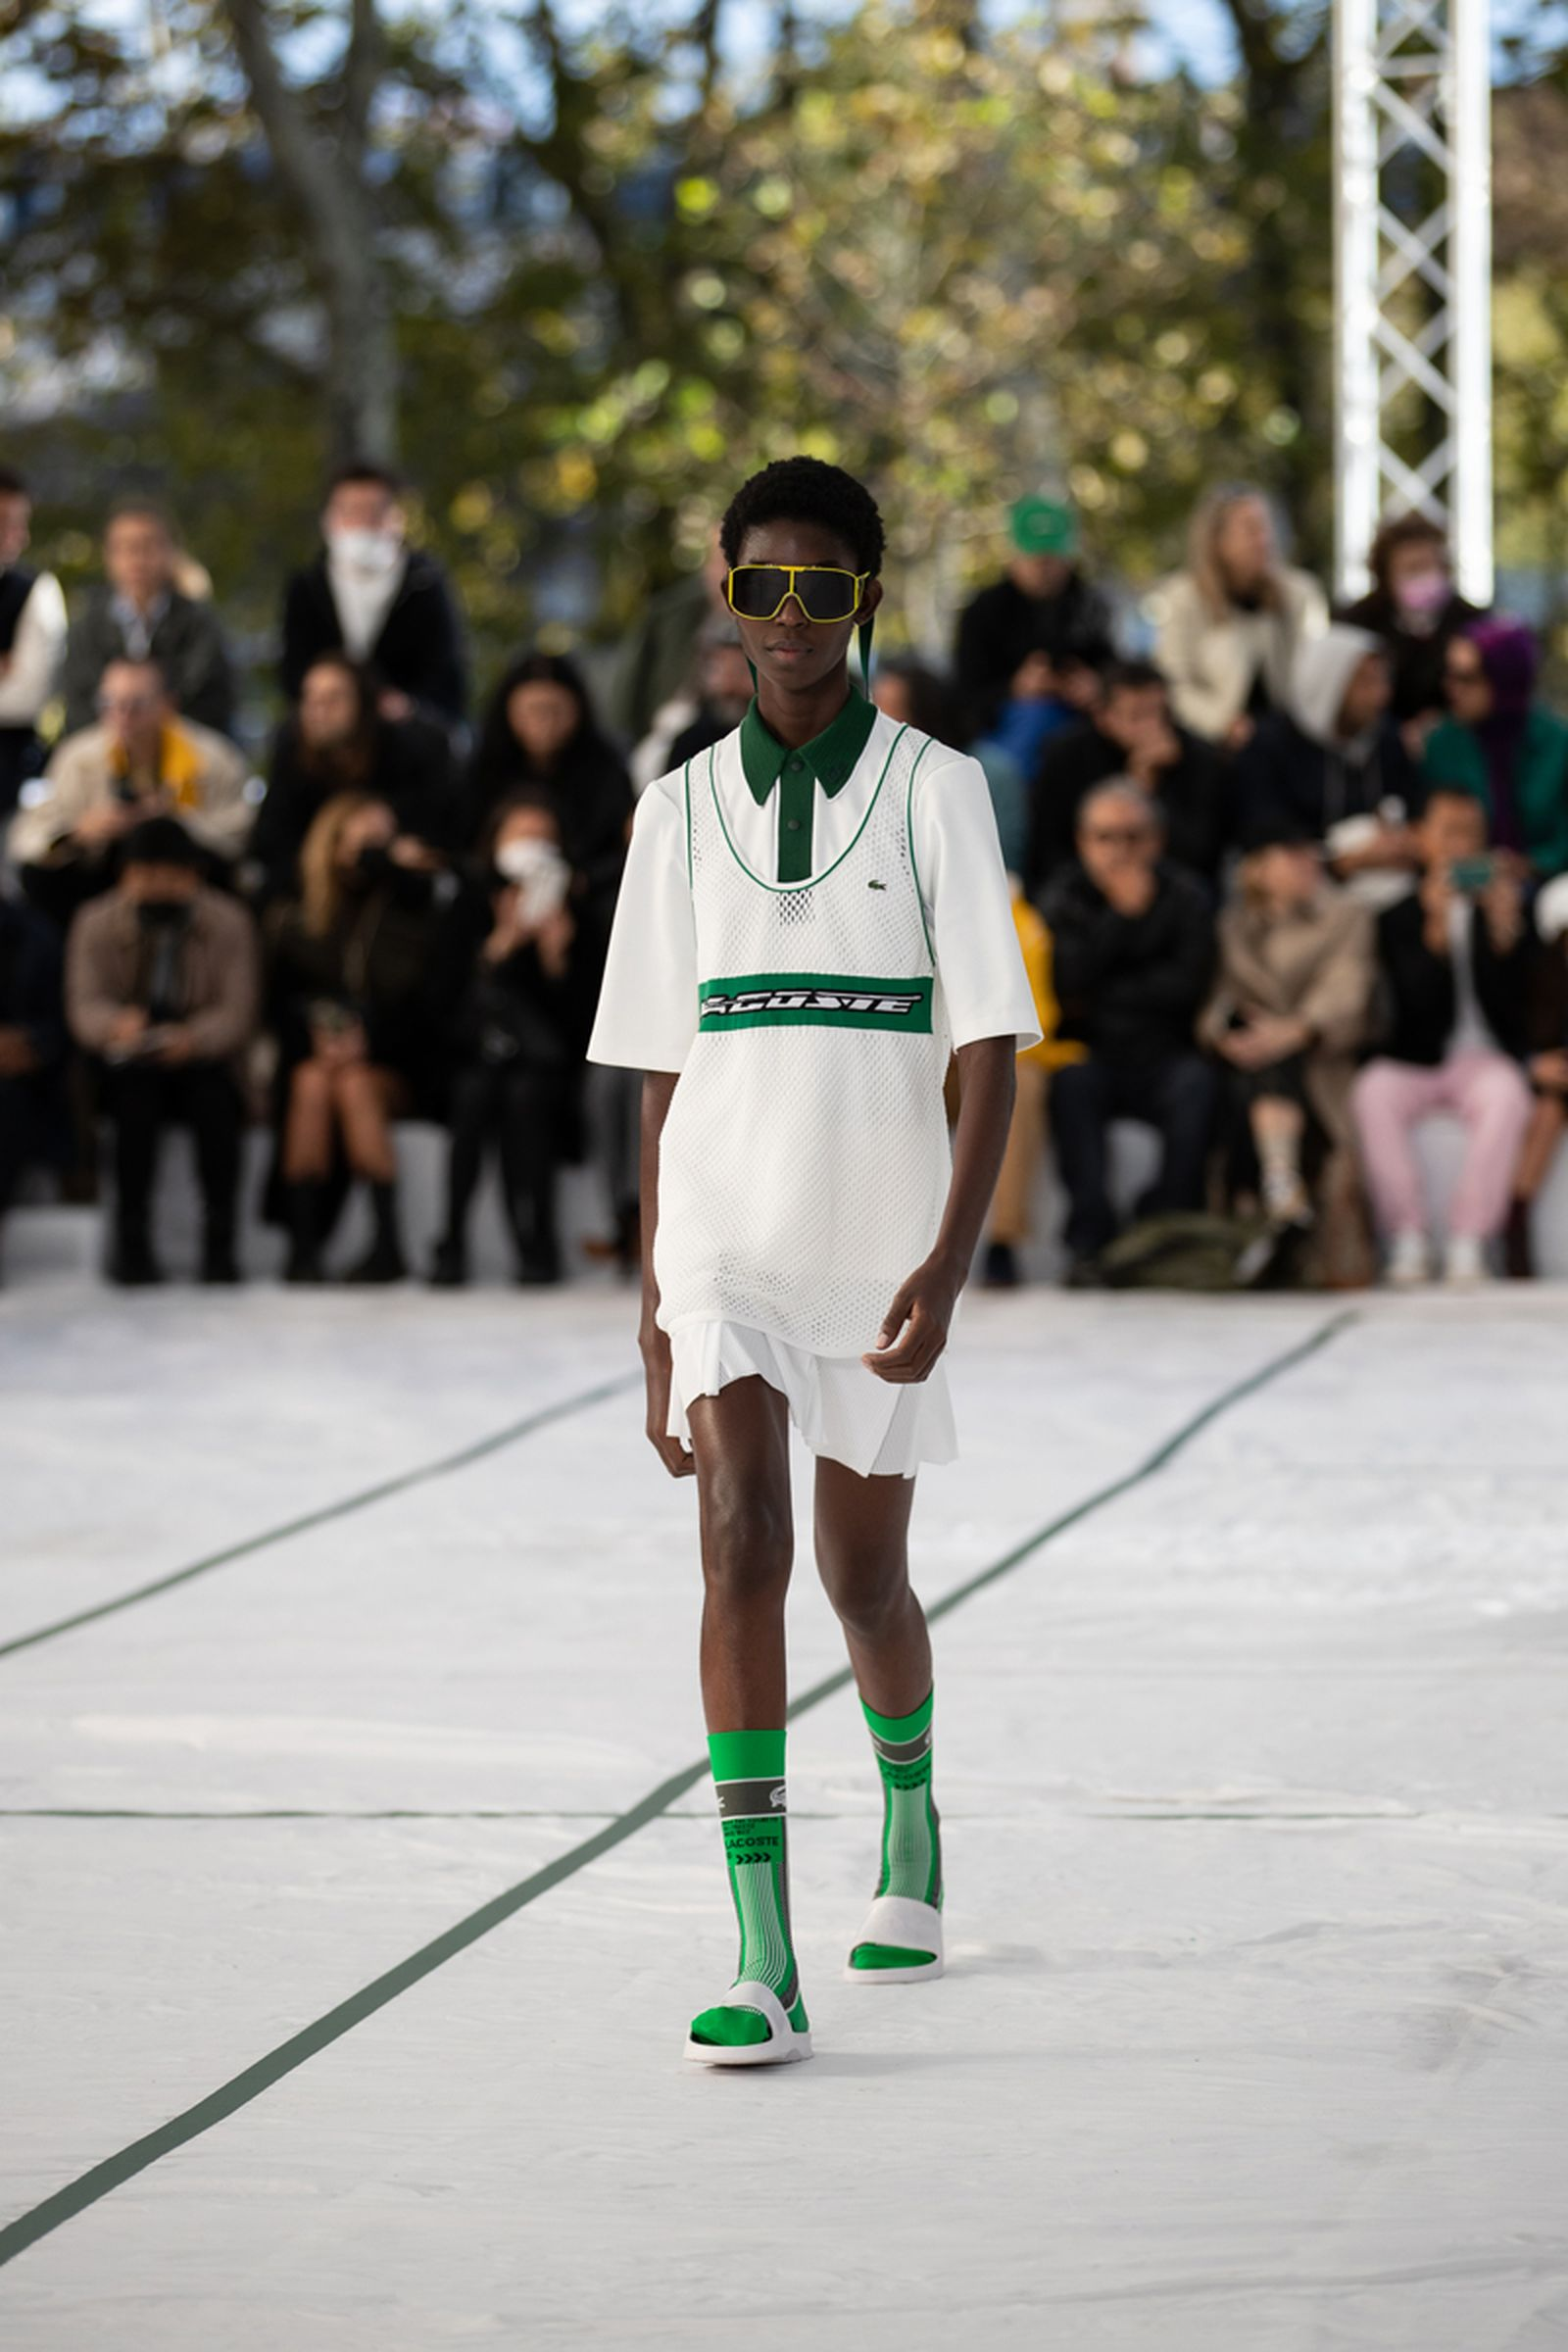 lacoste-spring-summer-2022-collection (36)